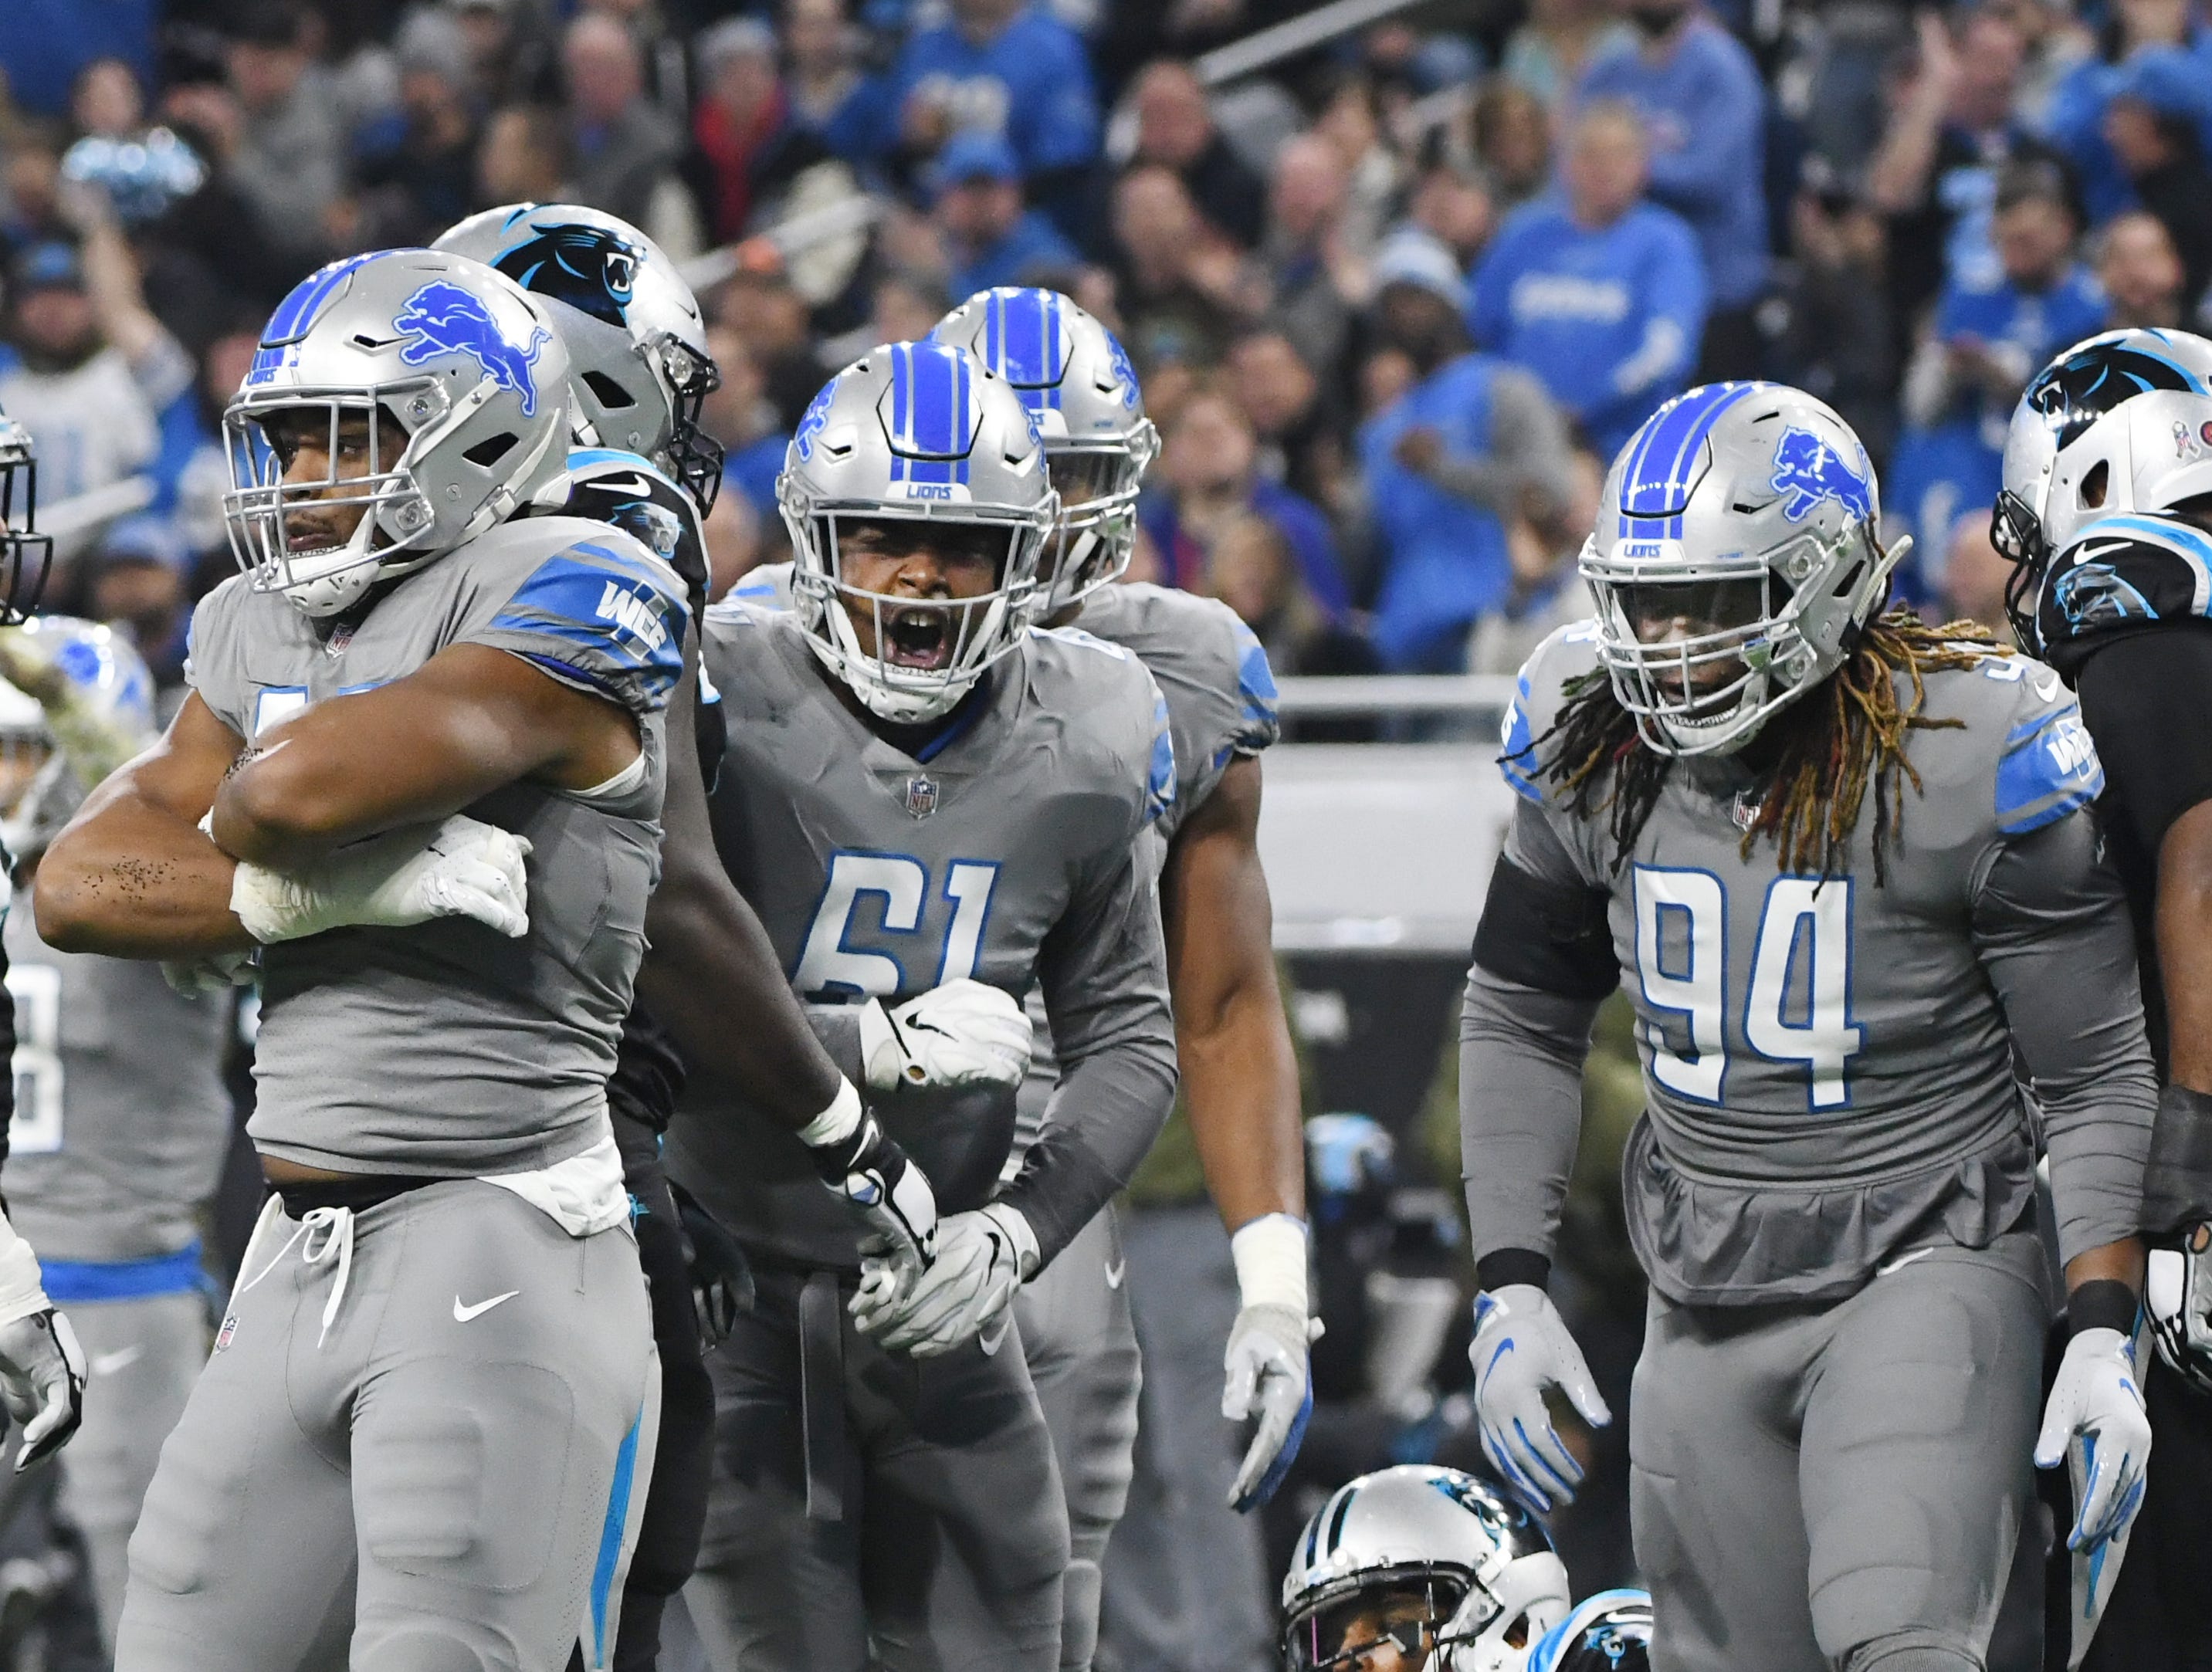 The Lions defense celebrates after teammate Da'Shawn Hands sacks Panthers quarterback Cam Newton, on the ground, in the first quarter.